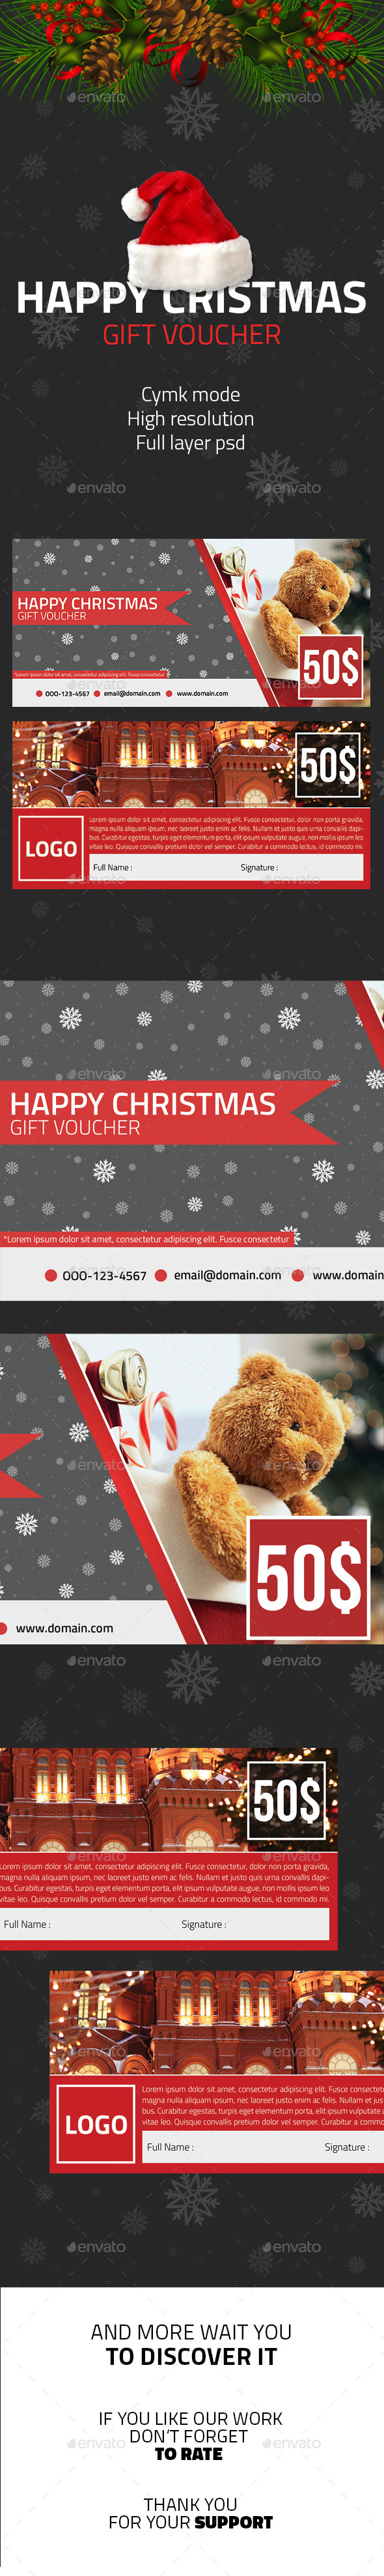 Happy Christmas Voucher Gift - Cards & Invites Print Templates